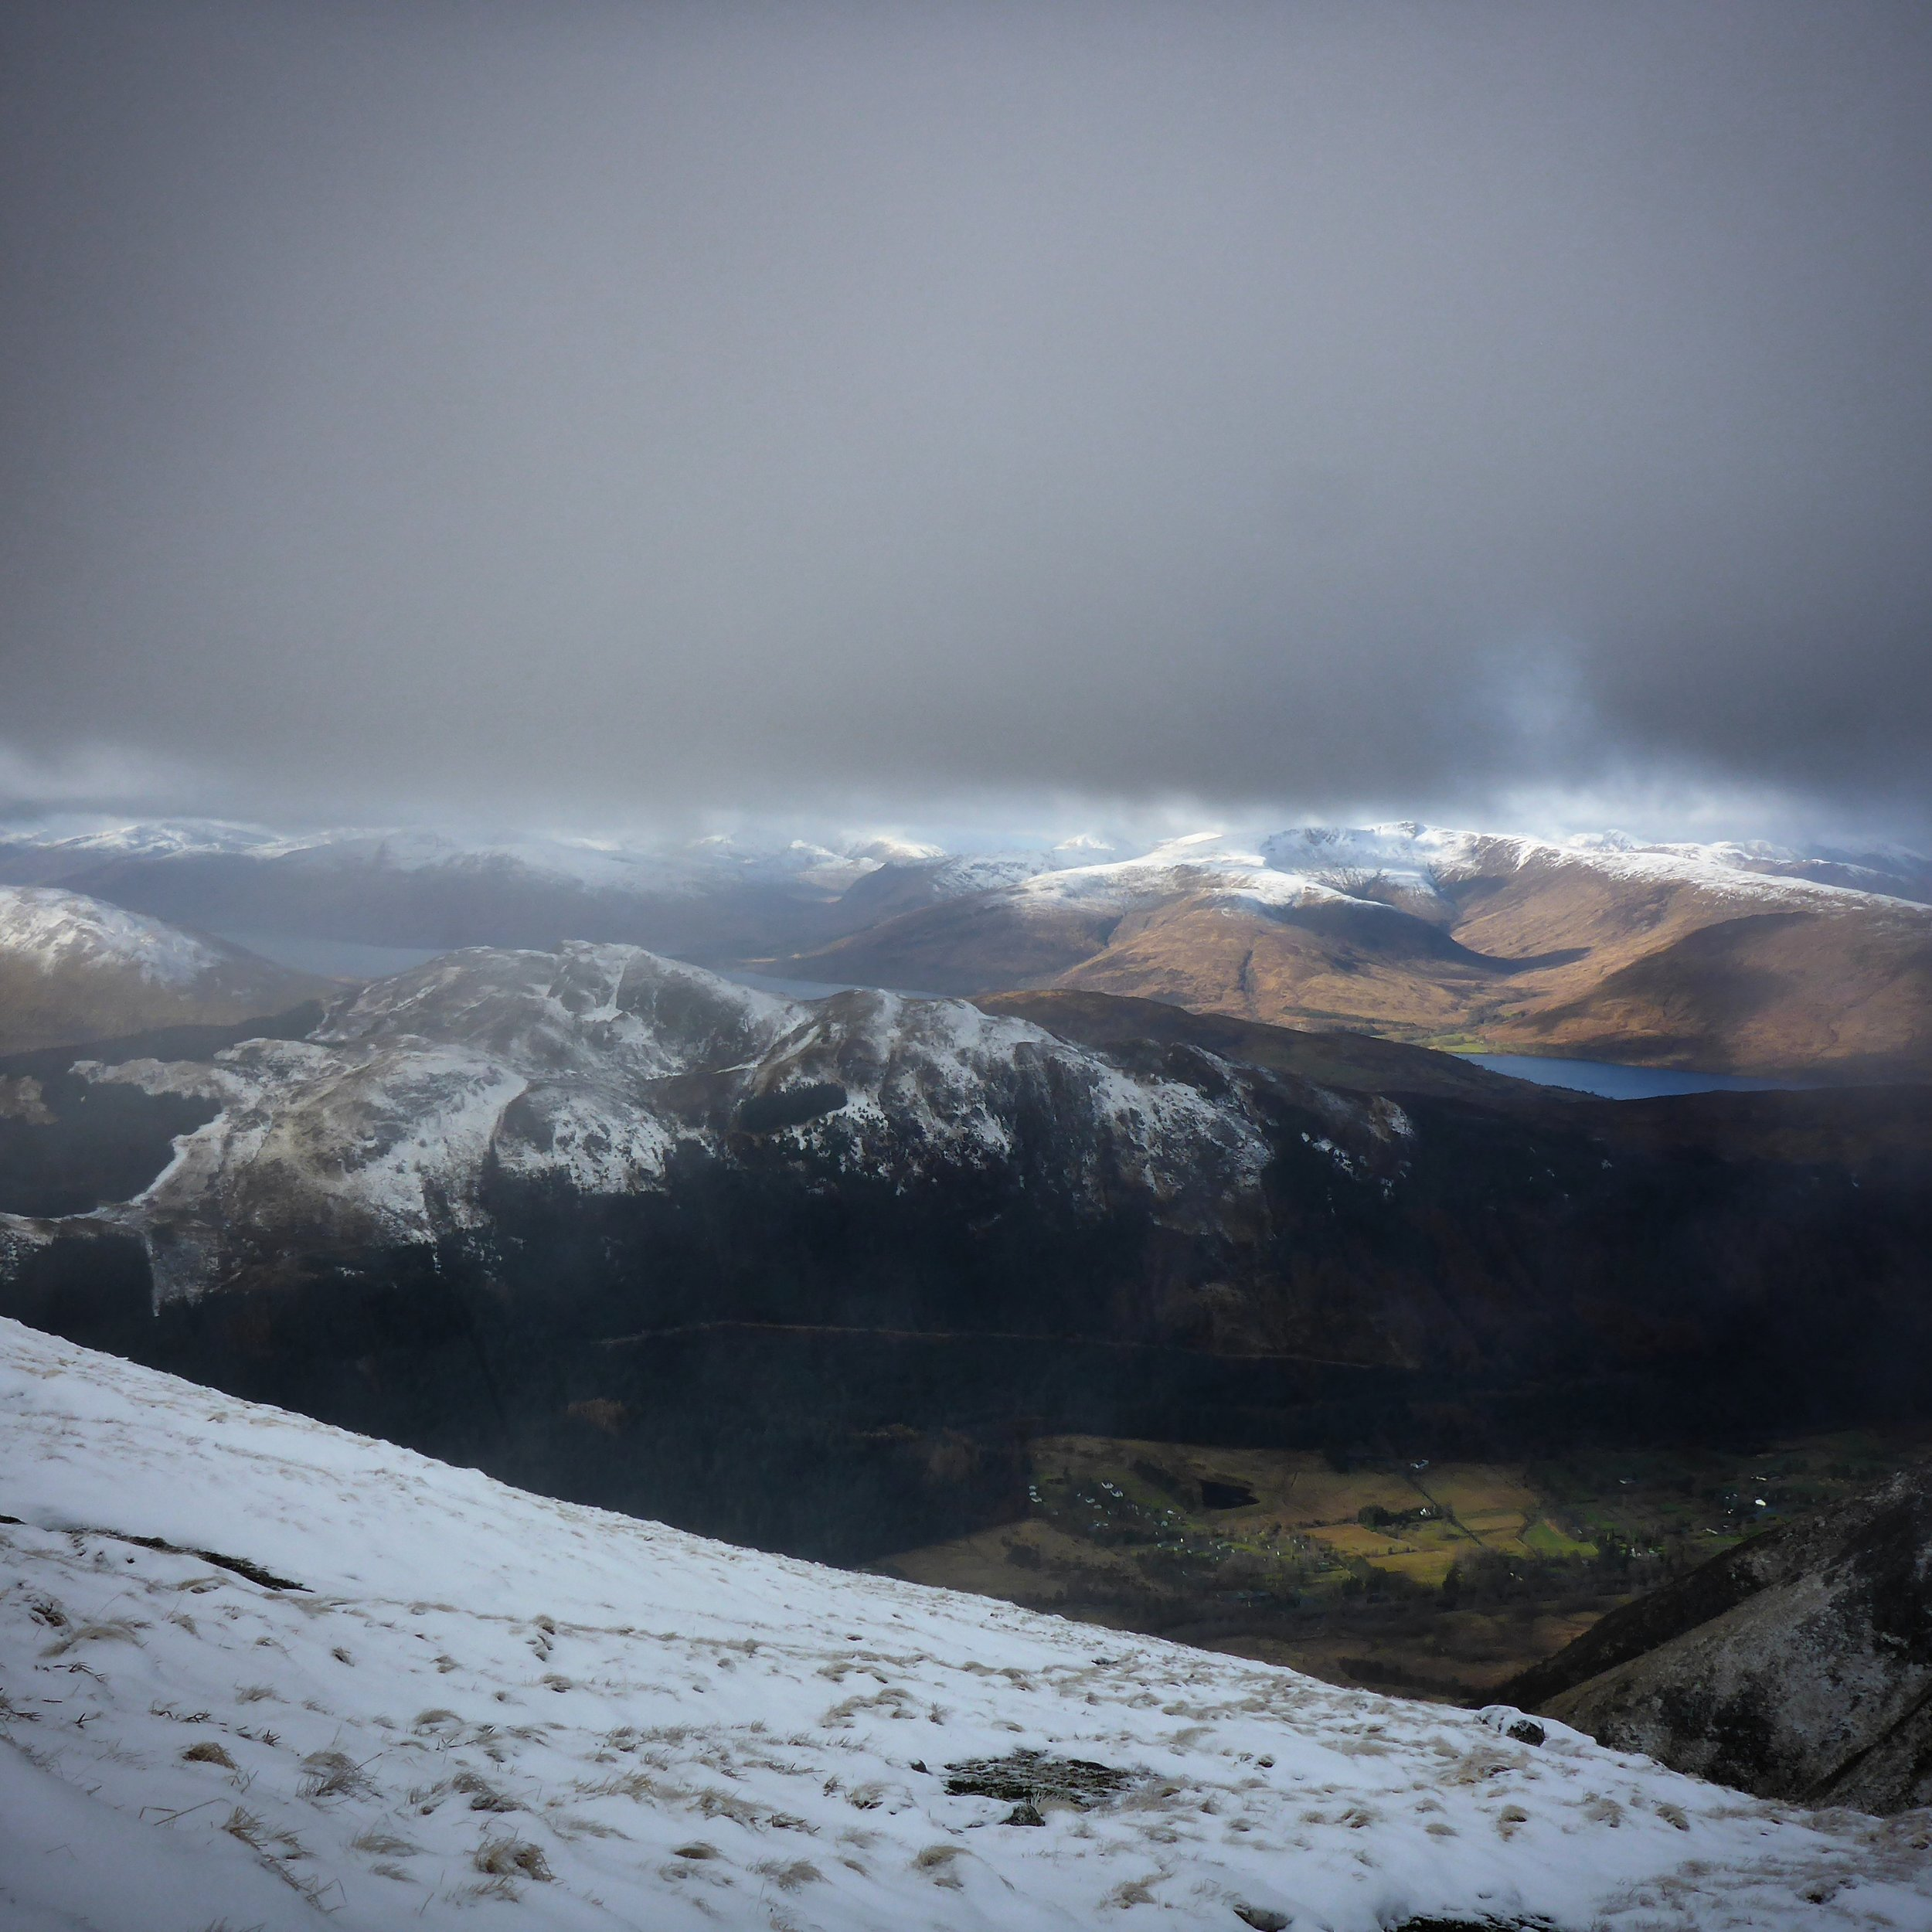 Great views from below the cloudbase on Ben nevis.